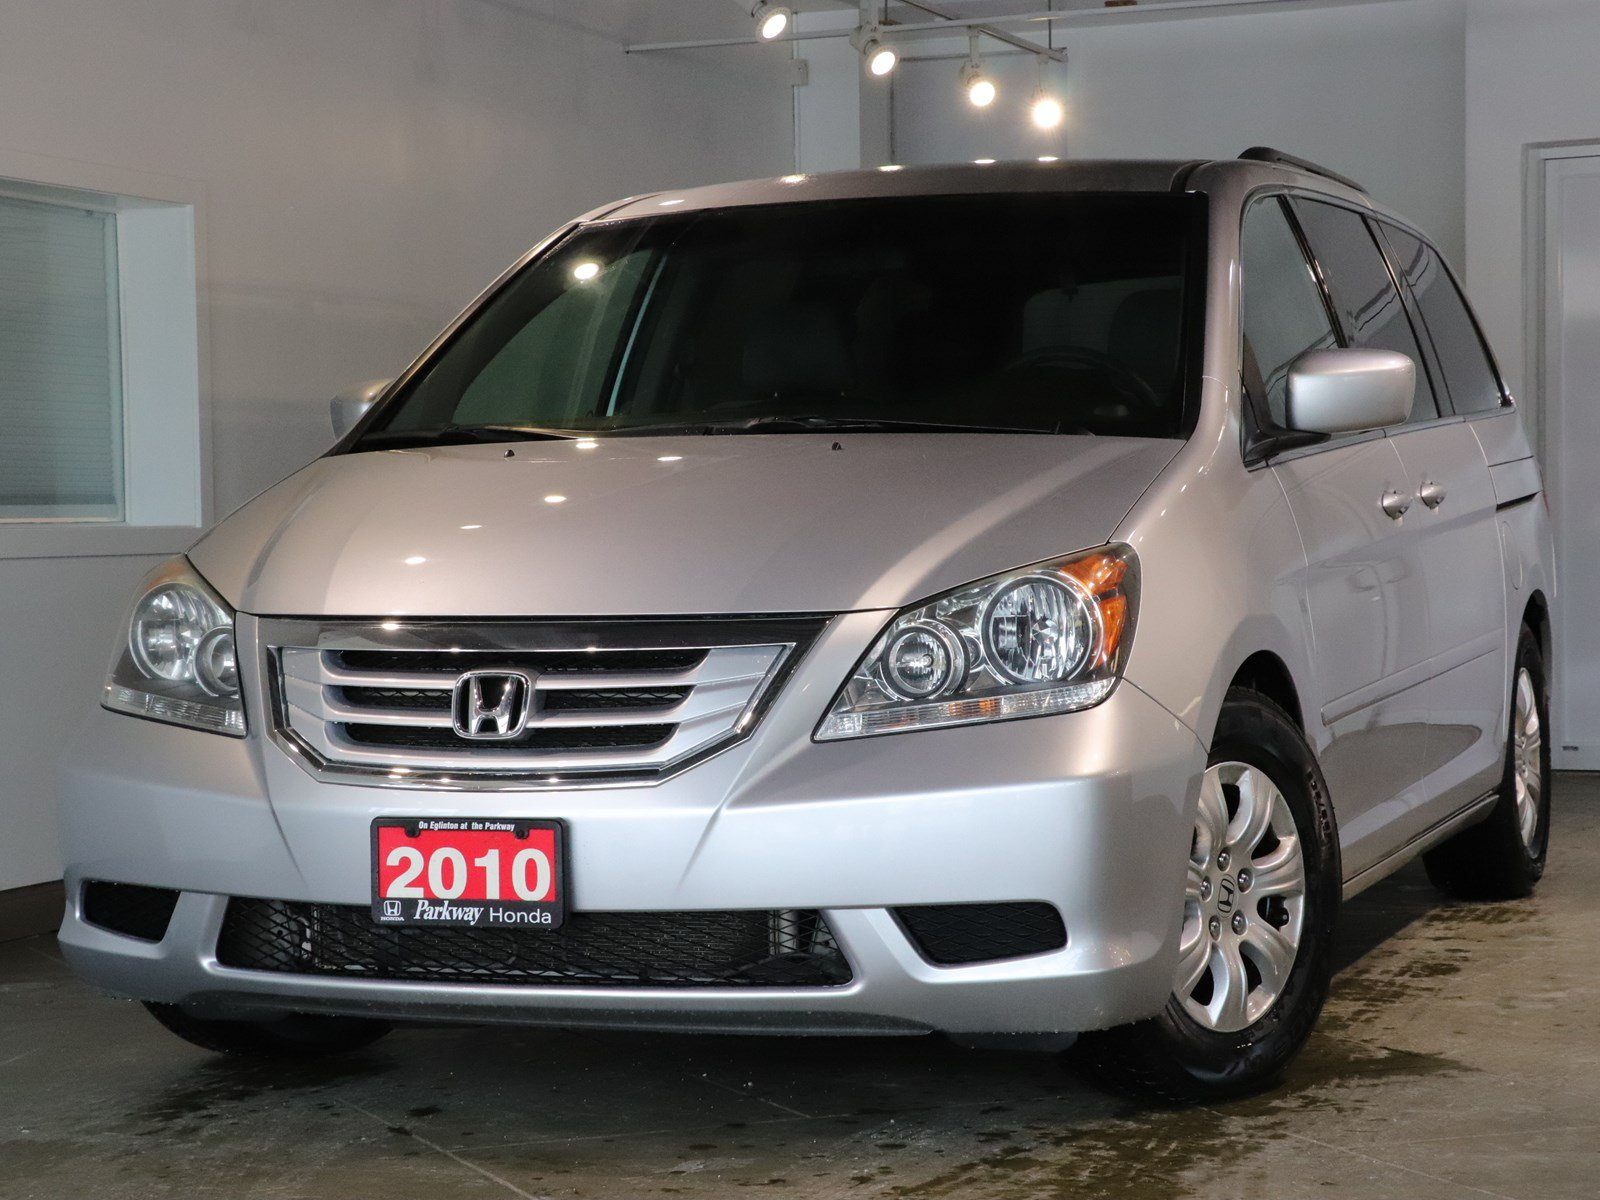 Pre-Owned 2010 Honda Odyssey SE - ON HOLD (not available for sale) FWD Mini-van, Passenger